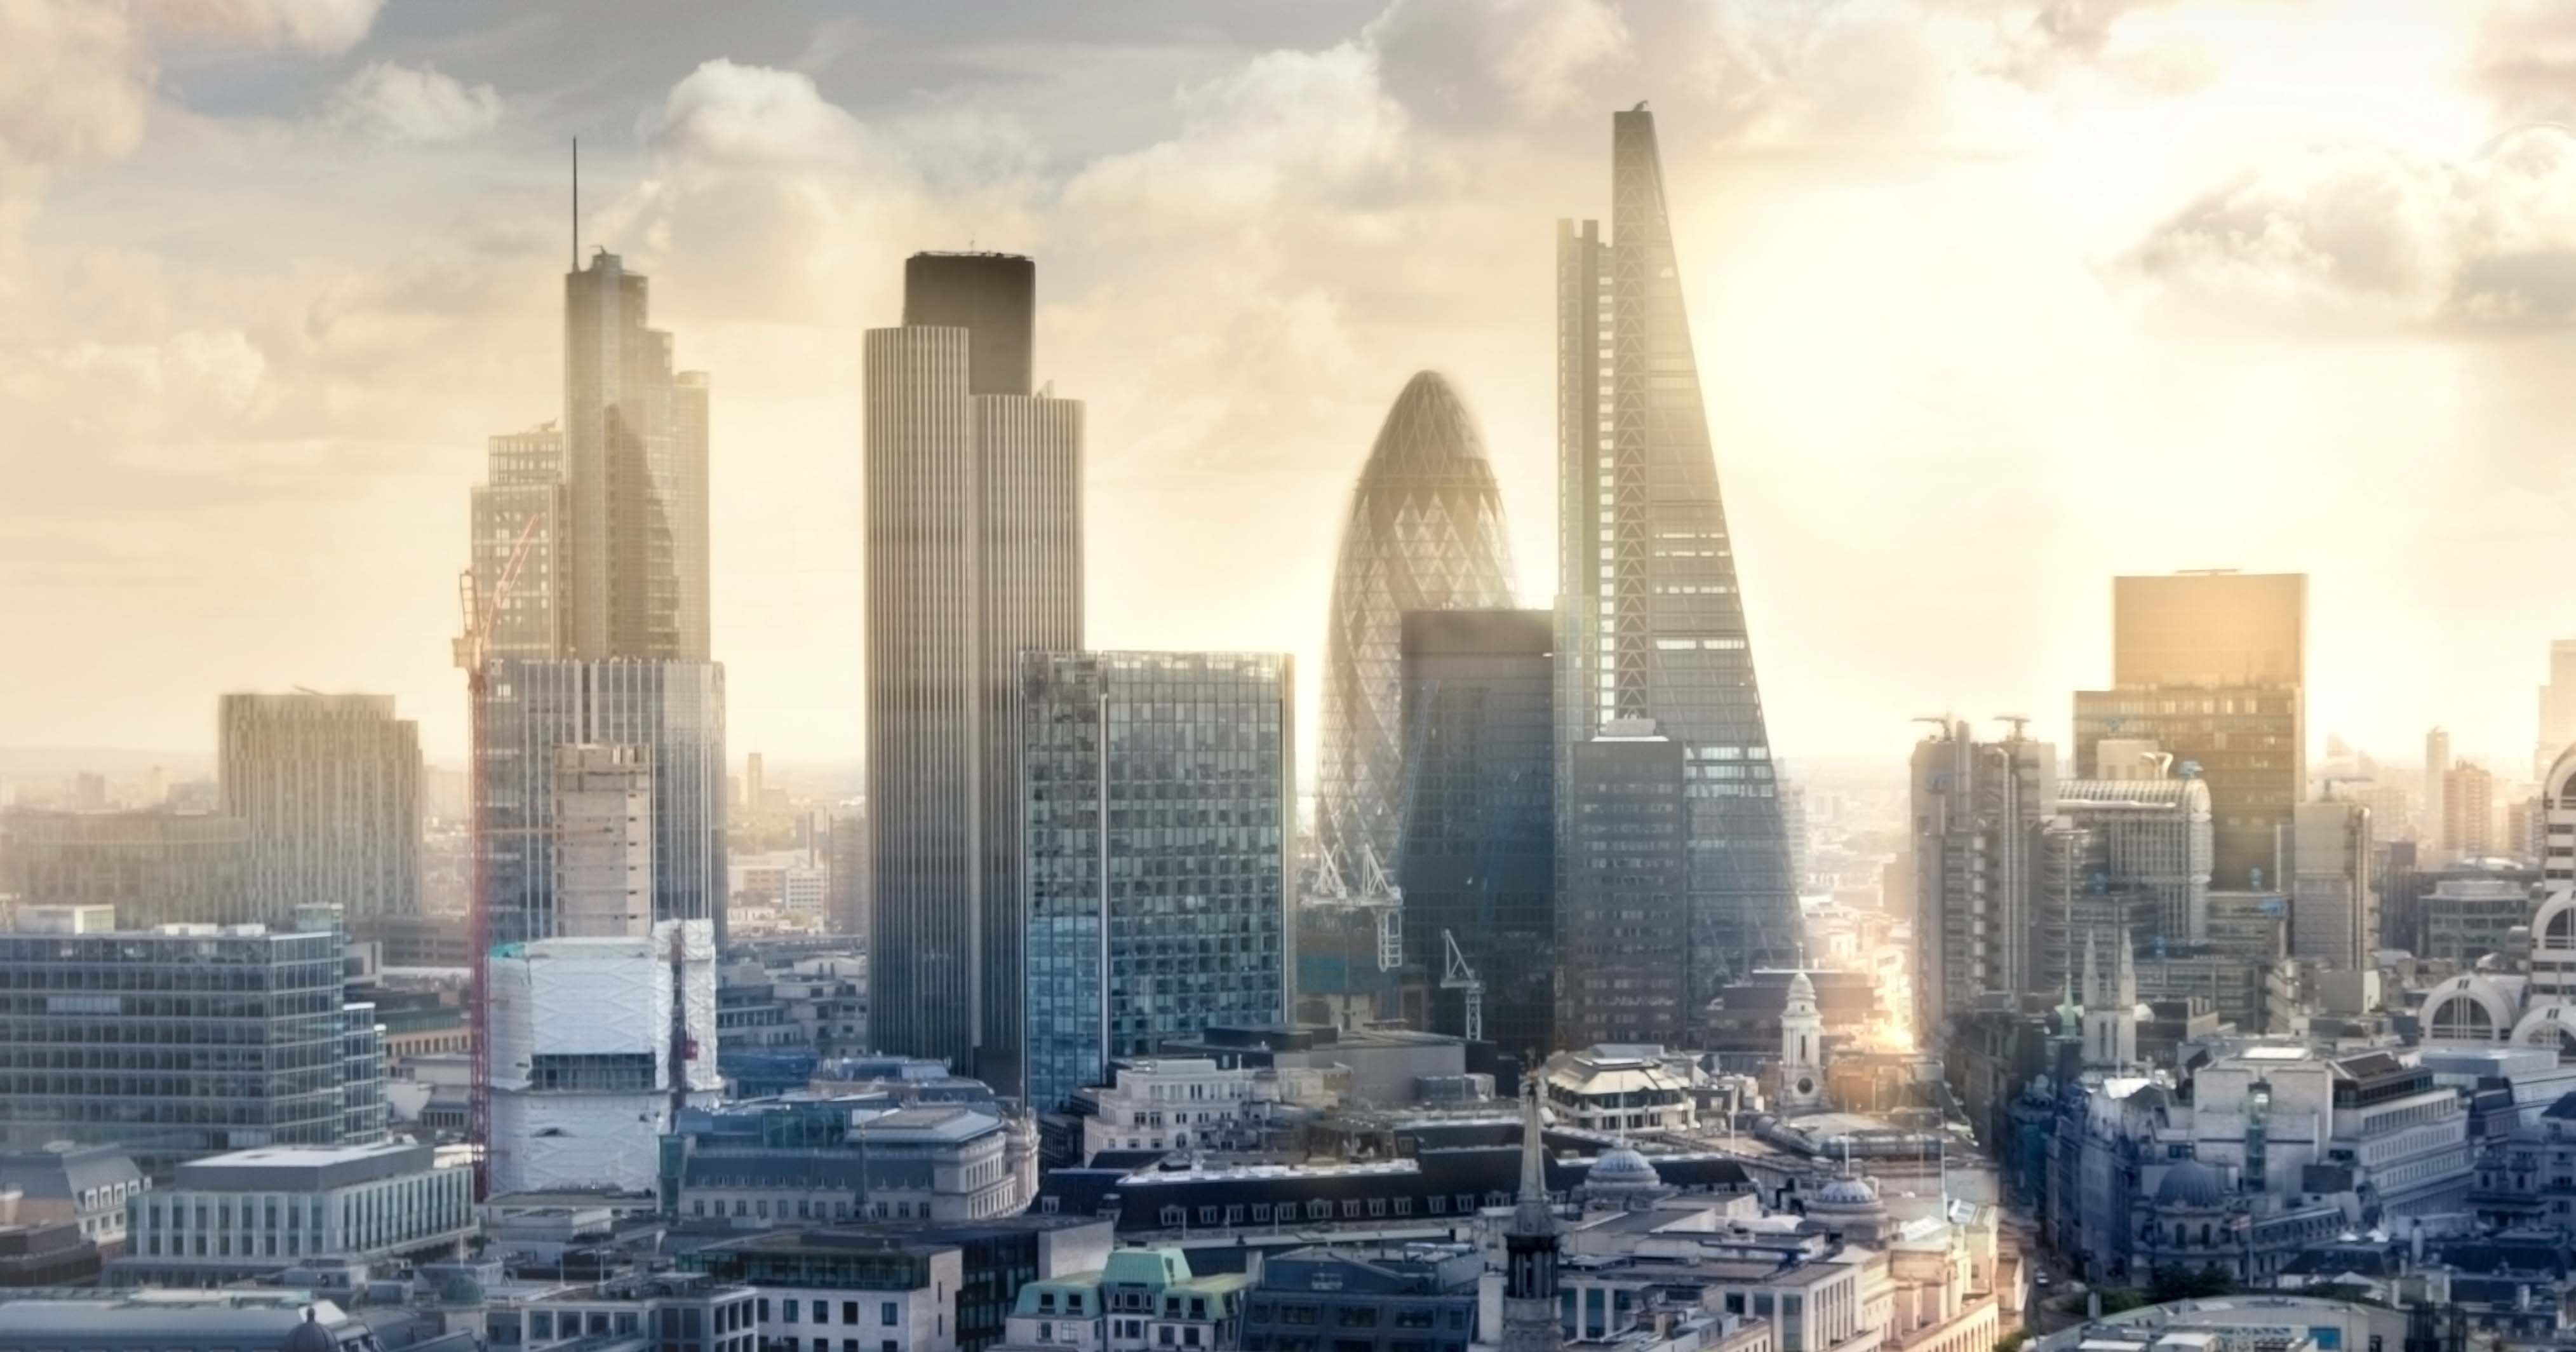 Image of the City of London skyline.